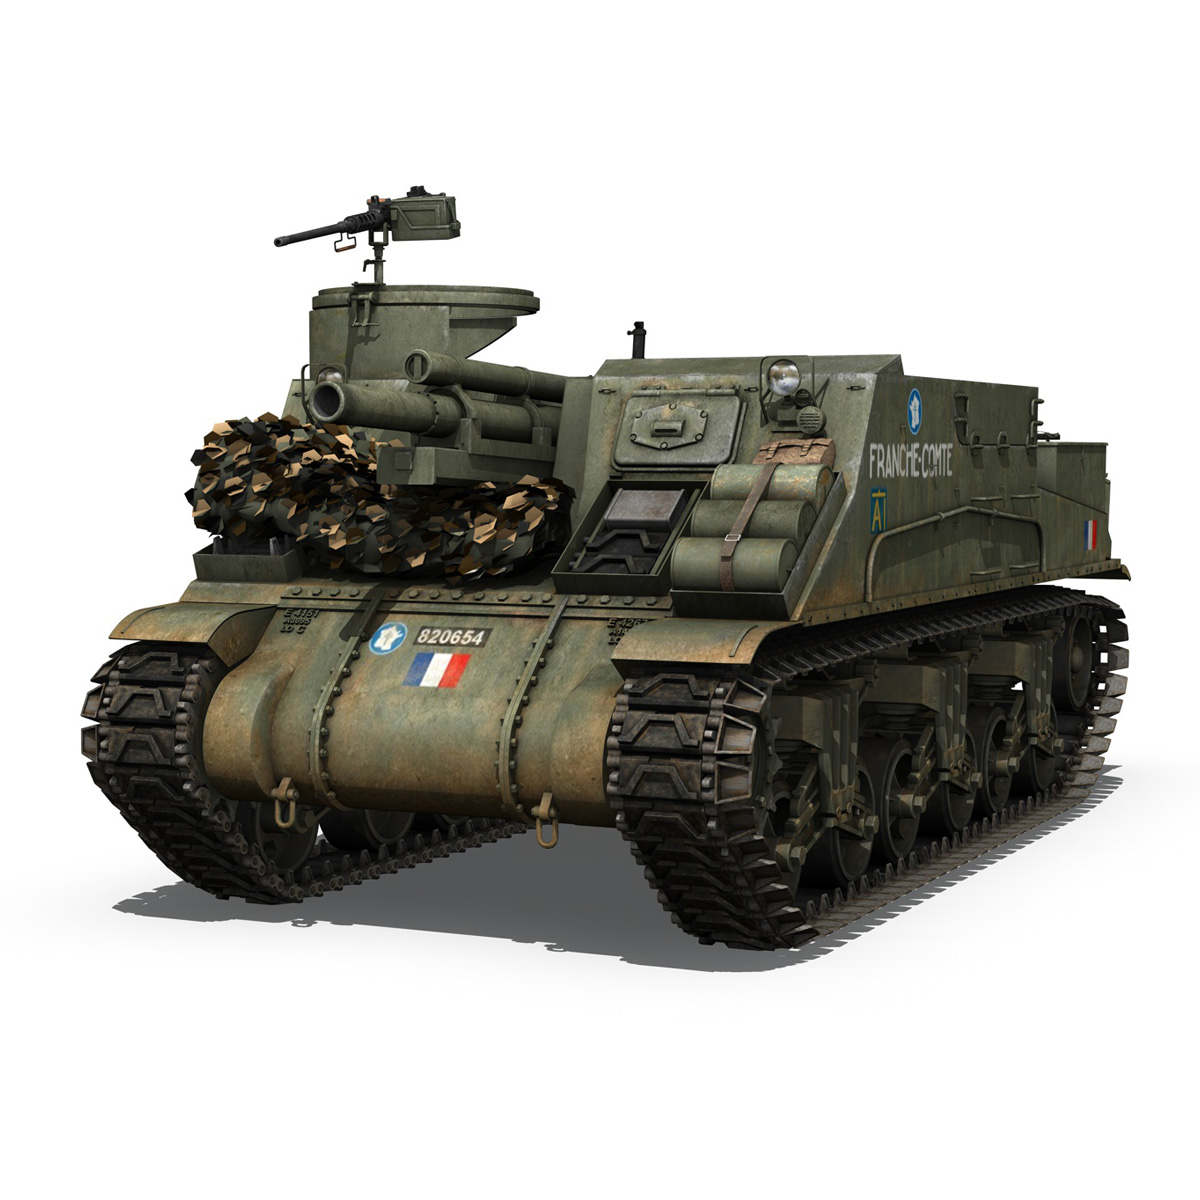 M7 Priest - Franche-Comte 3d model  265858